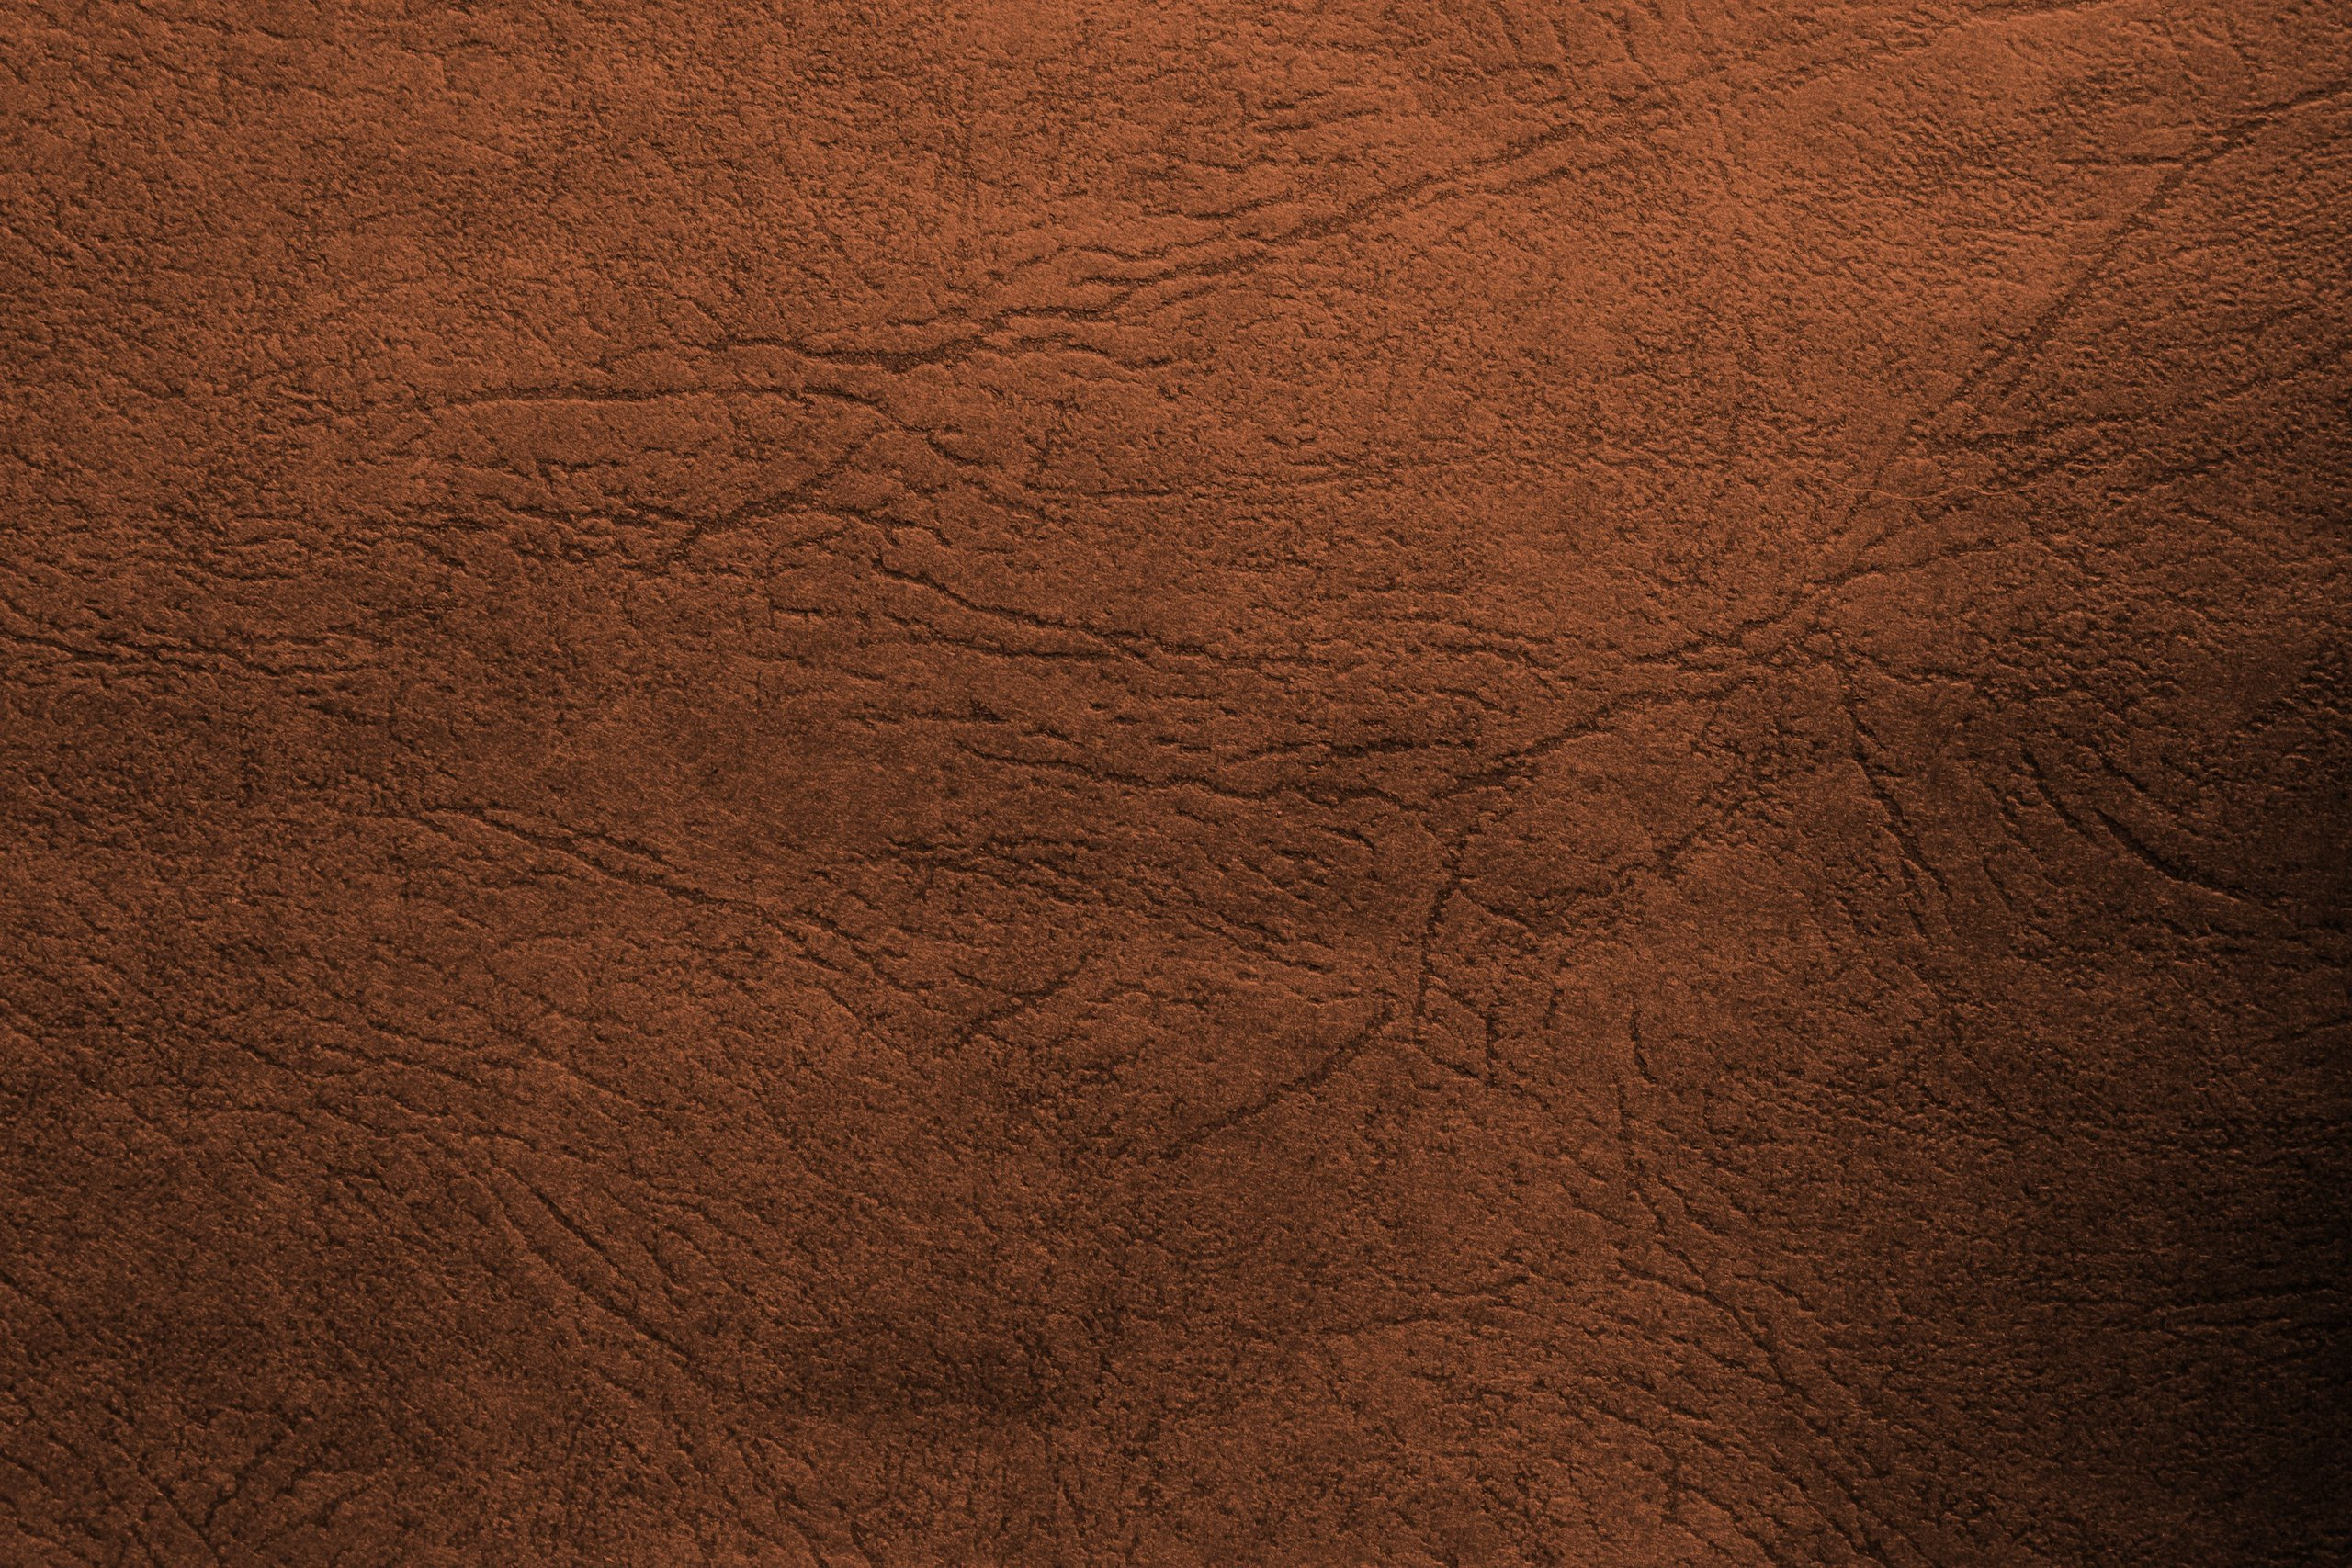 Leather Wallpaper Images - WallpaperSafari